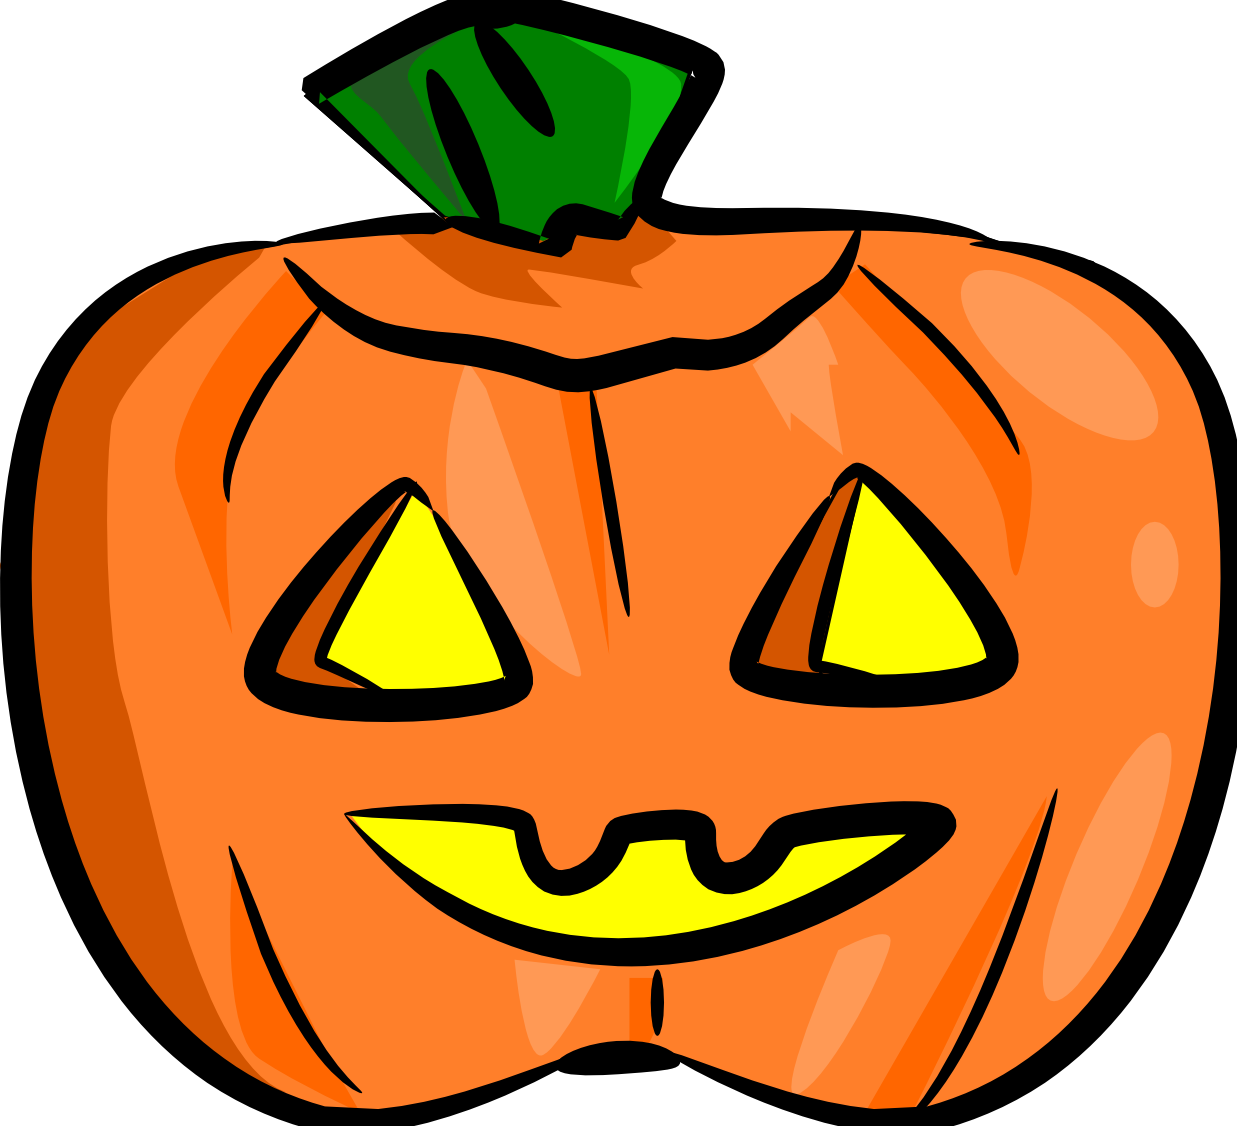 Free halloween jack o lantern clipart vector stock Cute Jack O Lantern Clip Art | Clipart Panda - Free Clipart Images vector stock